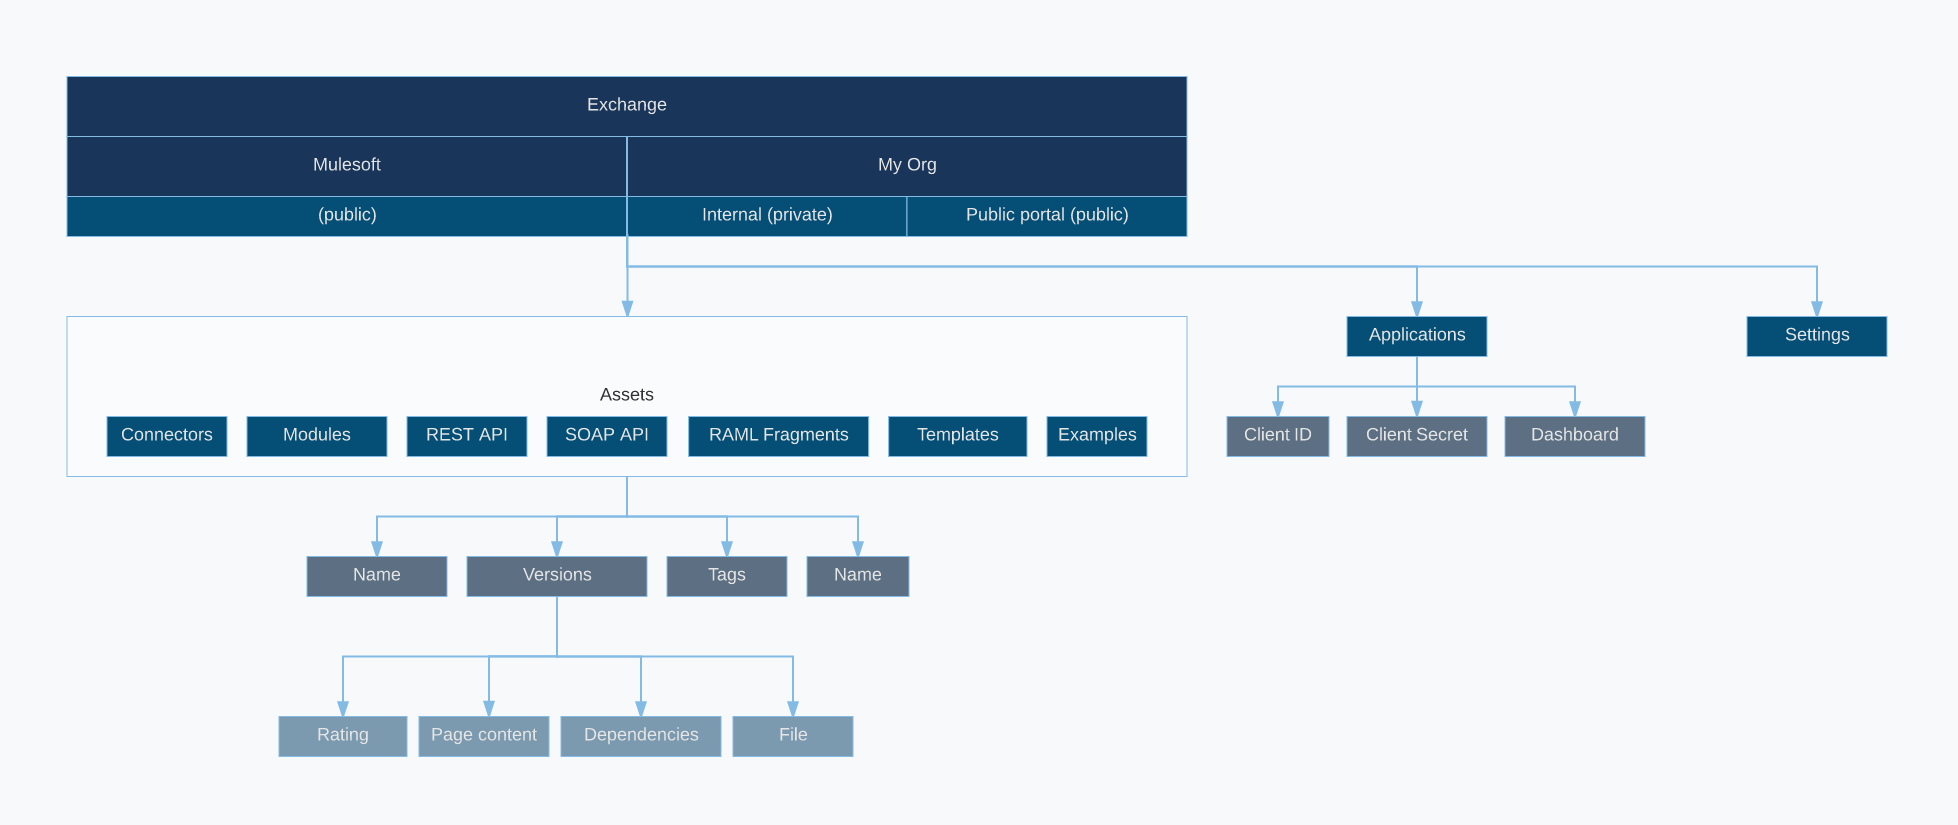 High level object model of Anypoint Exchange.